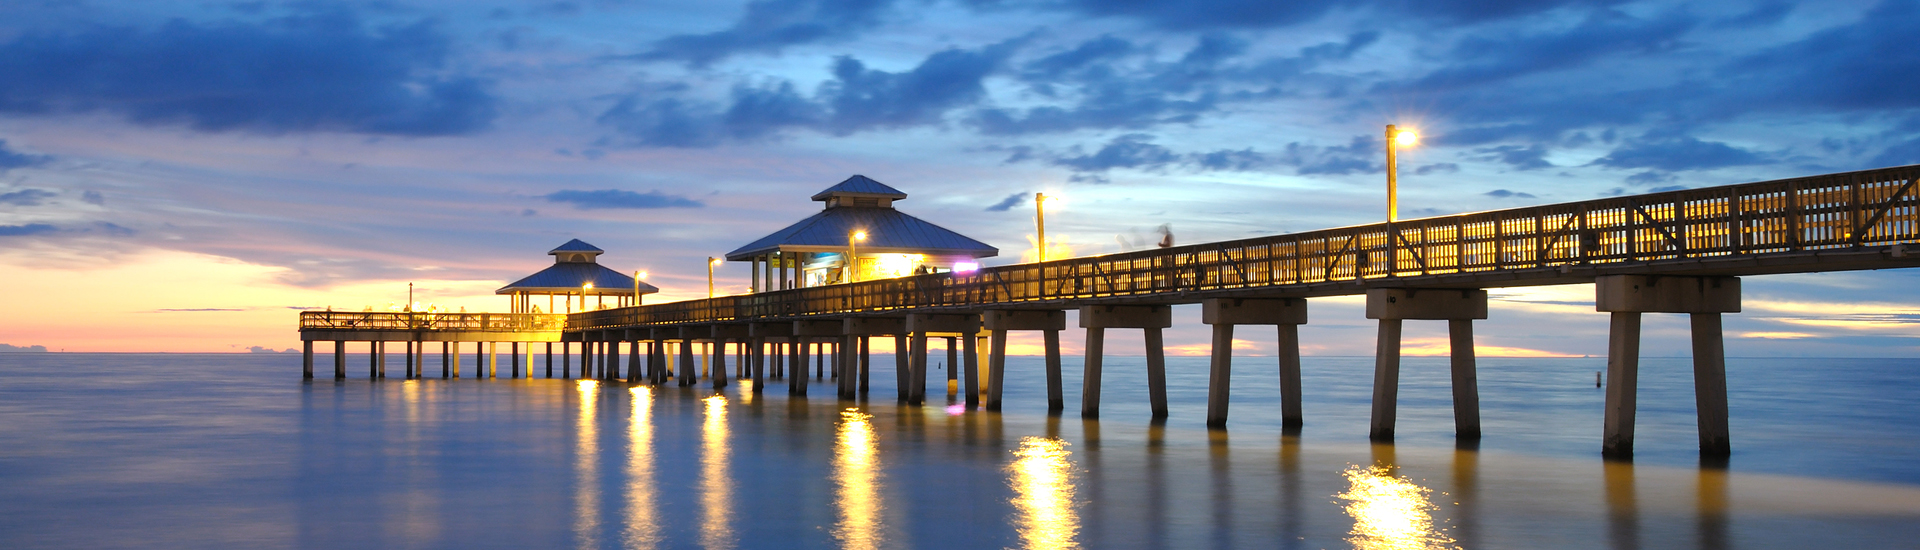 NAPLES PIER SUNSET 1920x550 WEB 300dpi